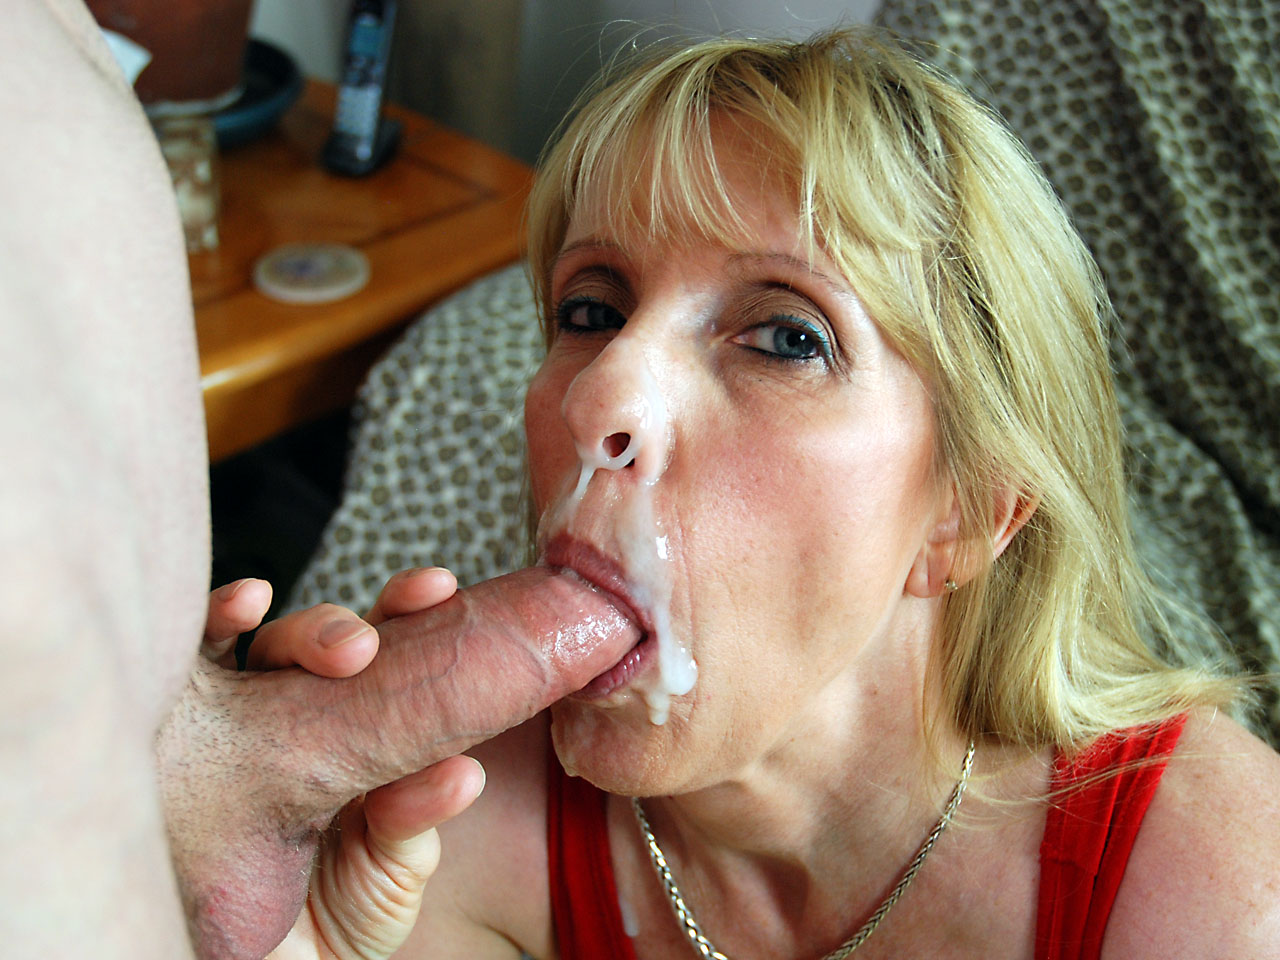 pictures-fucing-mommy-milf-mouth-full-pooping-while